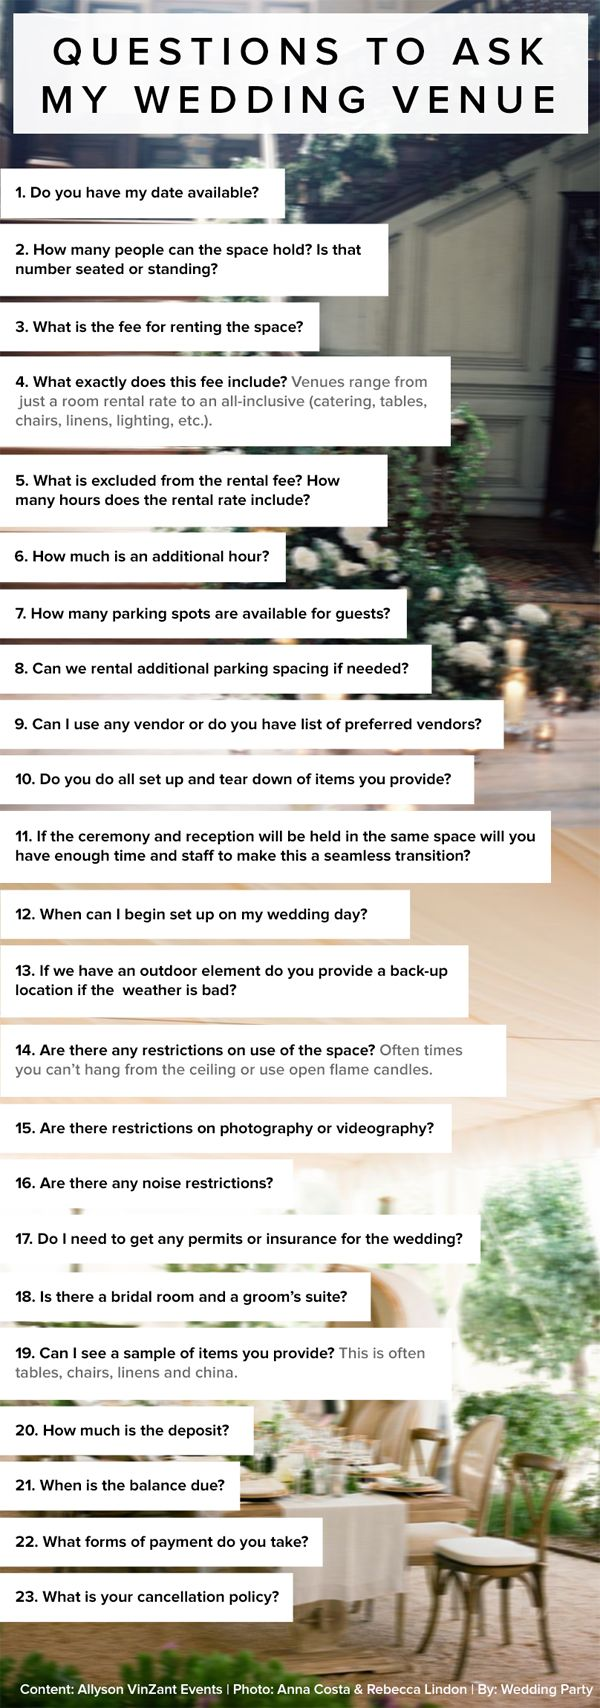 {questions to ask a wedding venue}